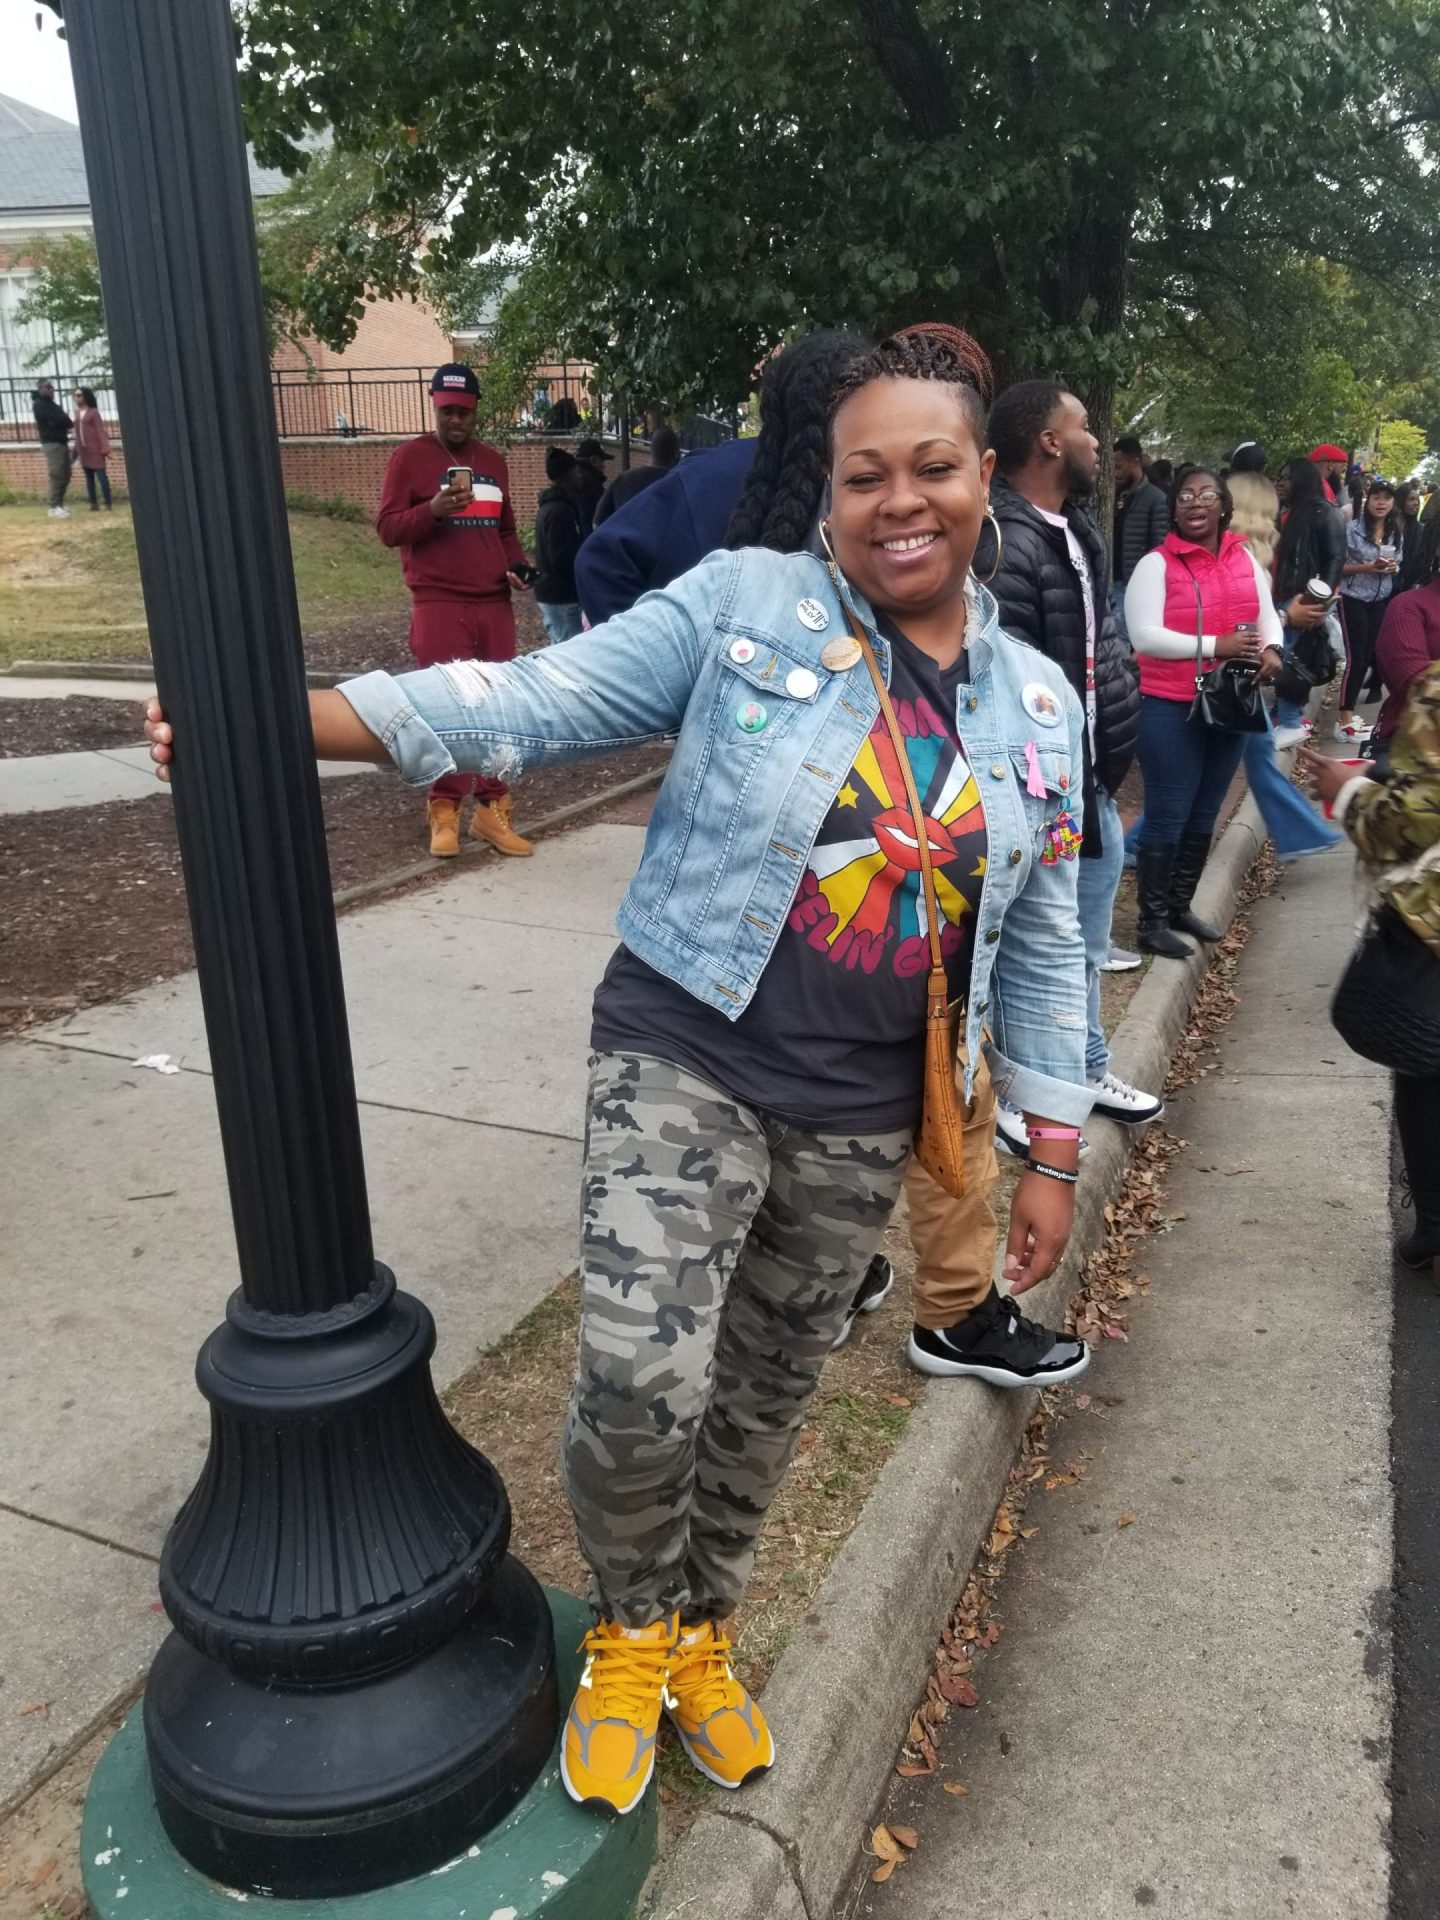 Parham-Regina-1-scaled HBCU Queens: From the CIAA to Changing the World